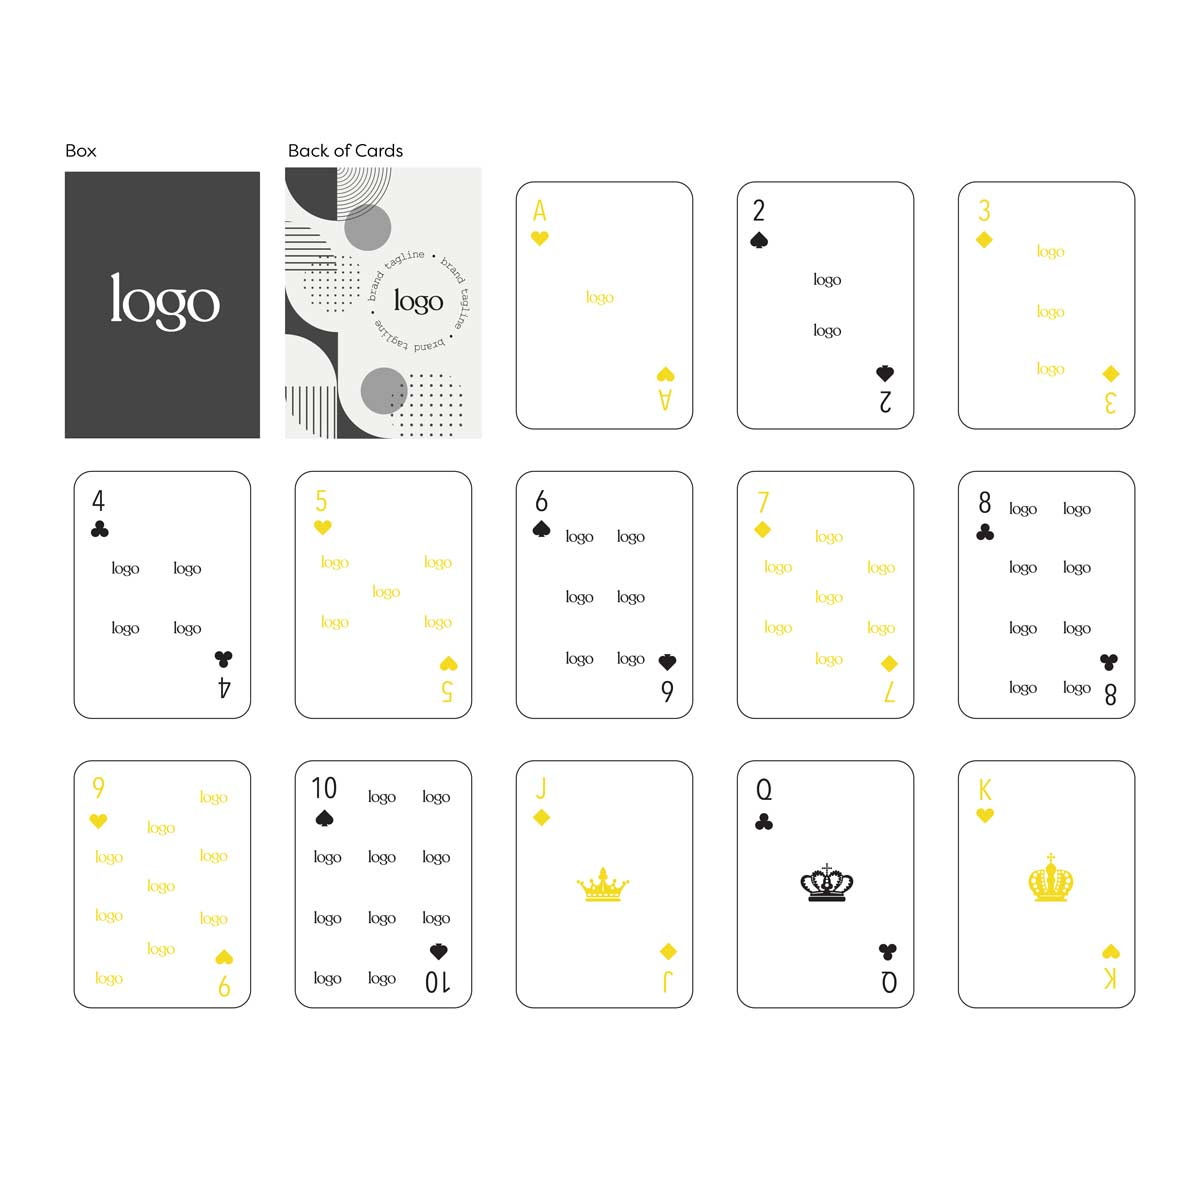 302311 custom playing card deck full color full bleed digital imprint one back design unique design for each card front clear acetate box